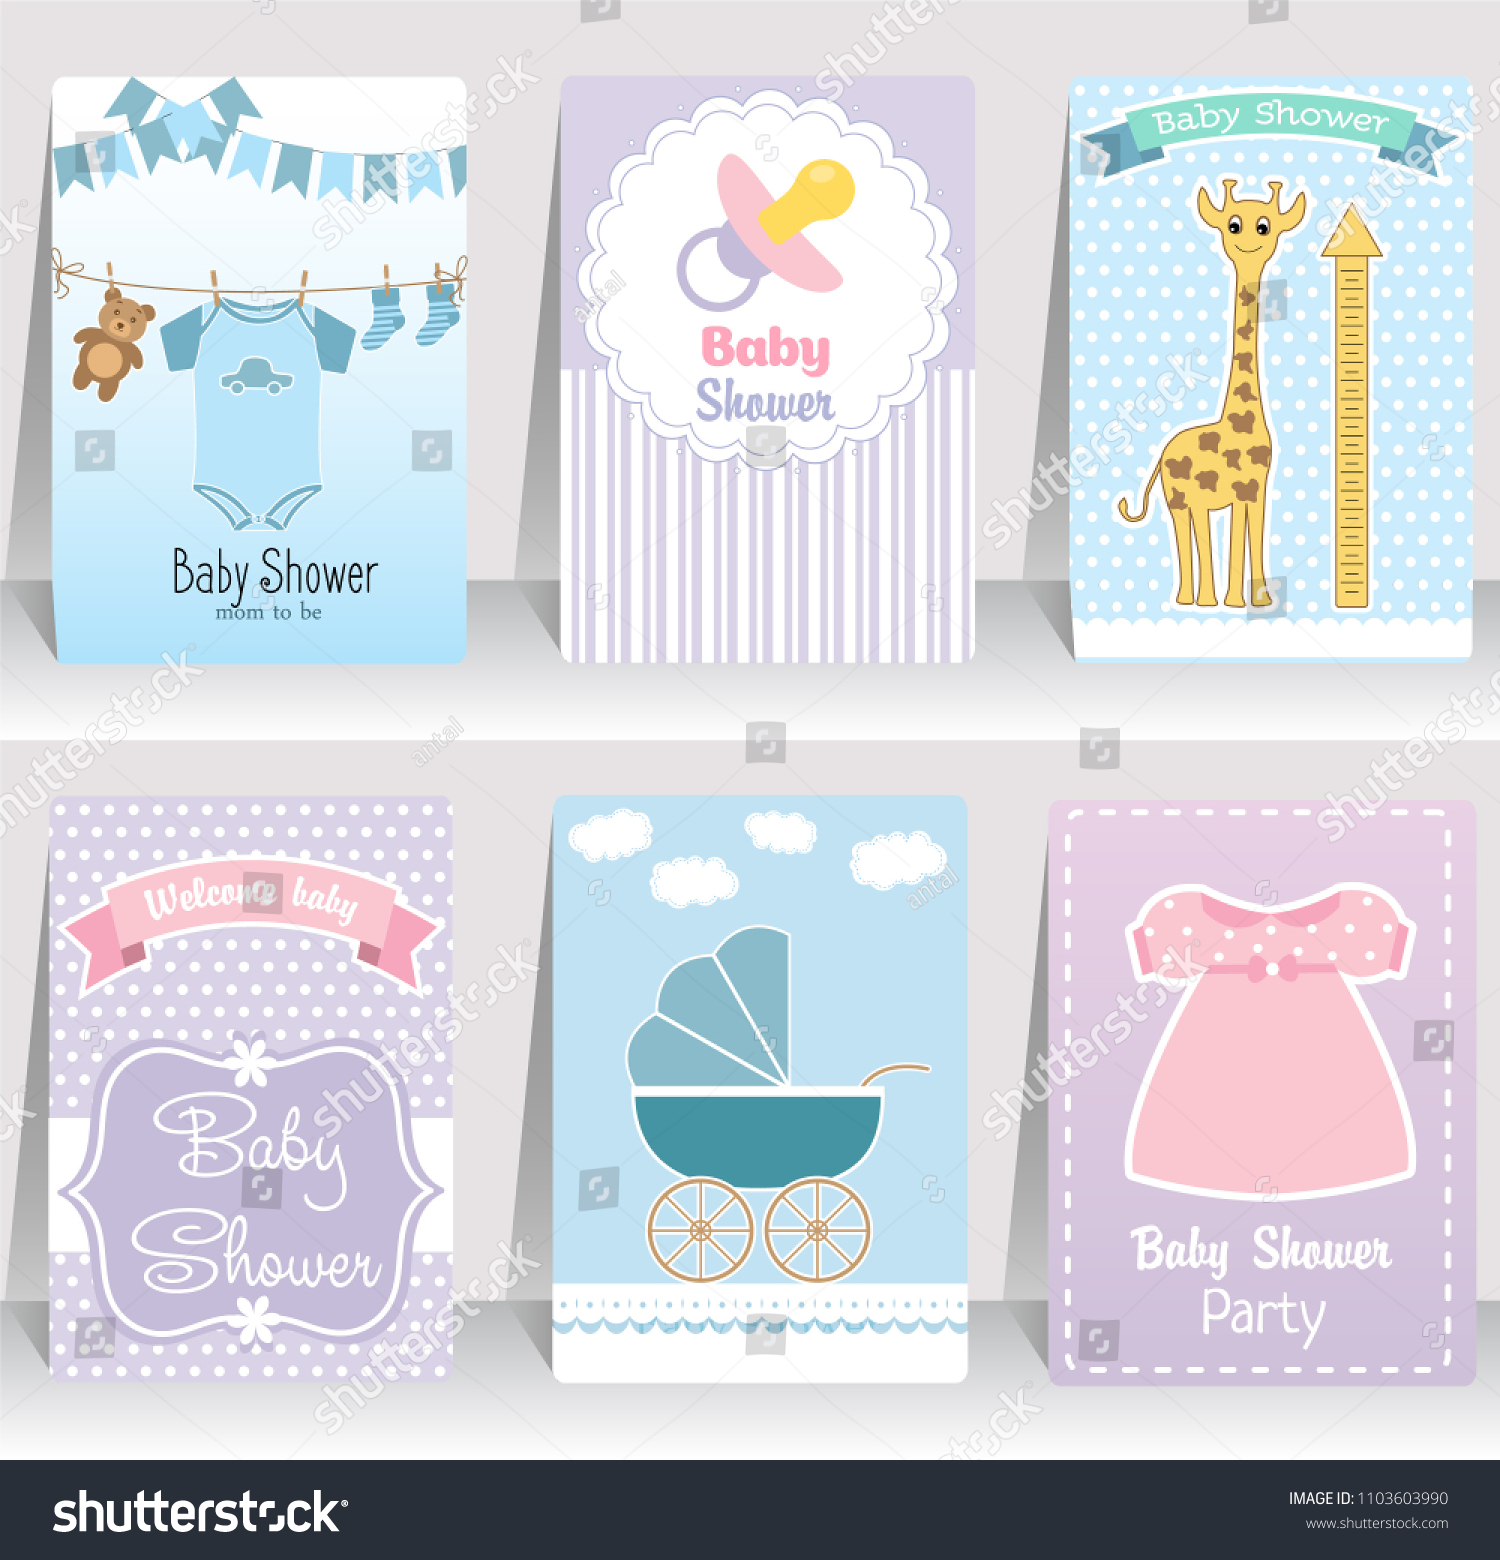 Happy Birthday, Baby Shower For Newborn Celebration Greeting And Invitation